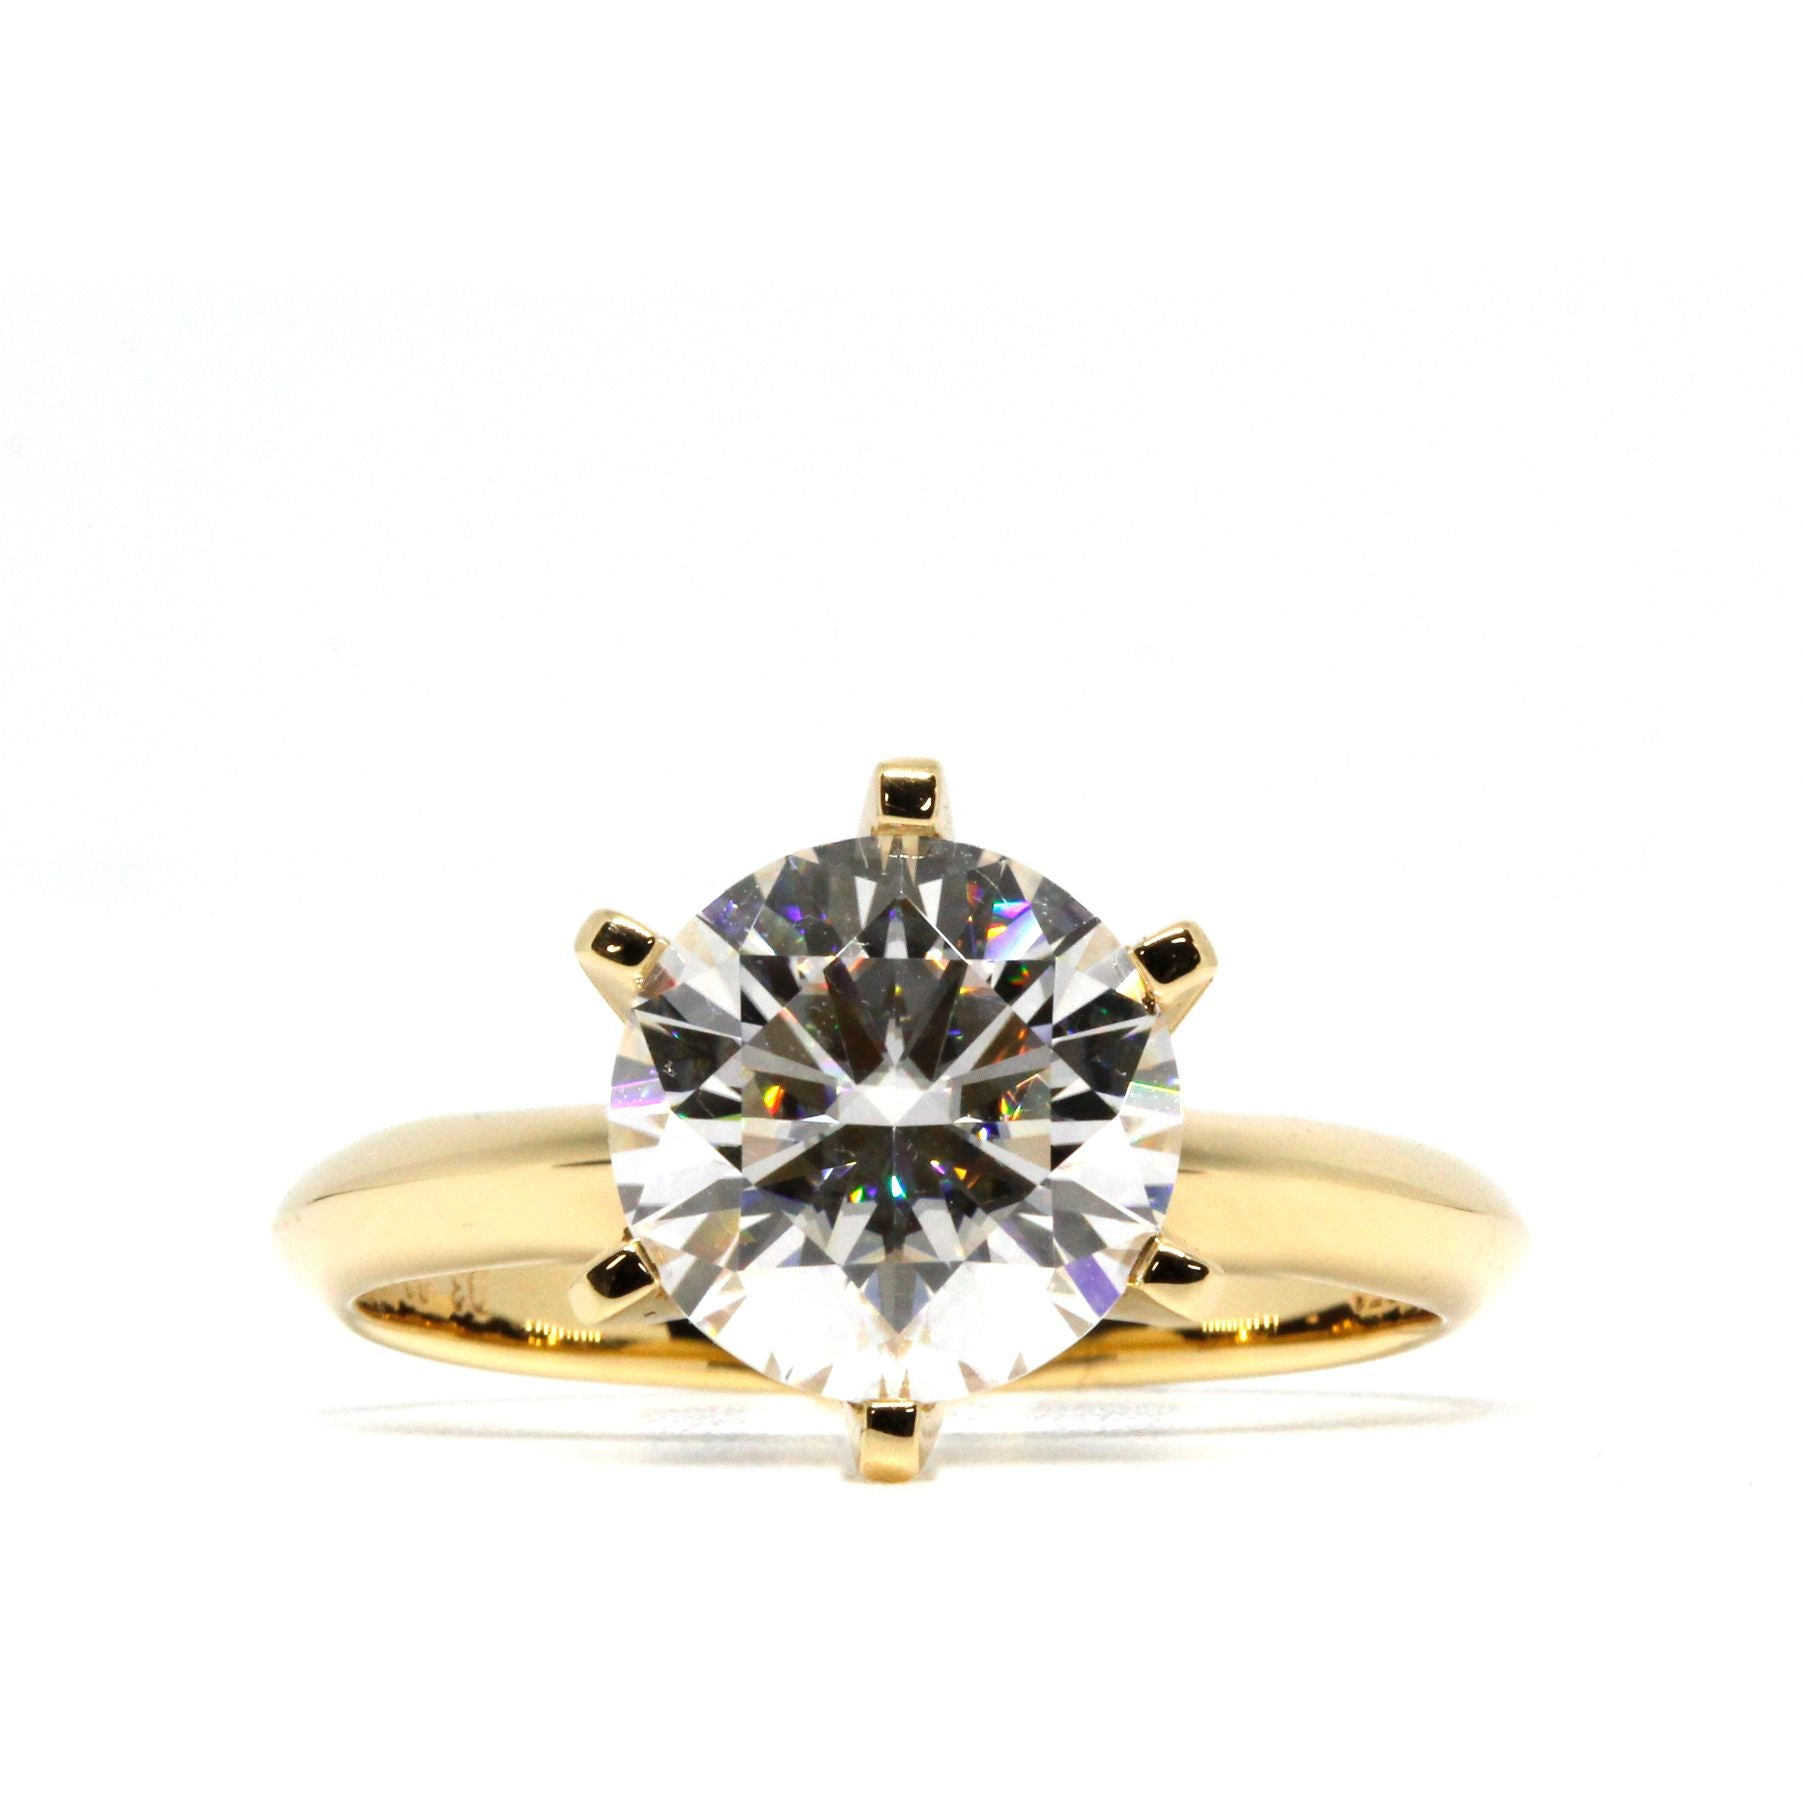 3 Carat Moissanite Classic Solitaire 6 Prong 18K Yellow Gold Band